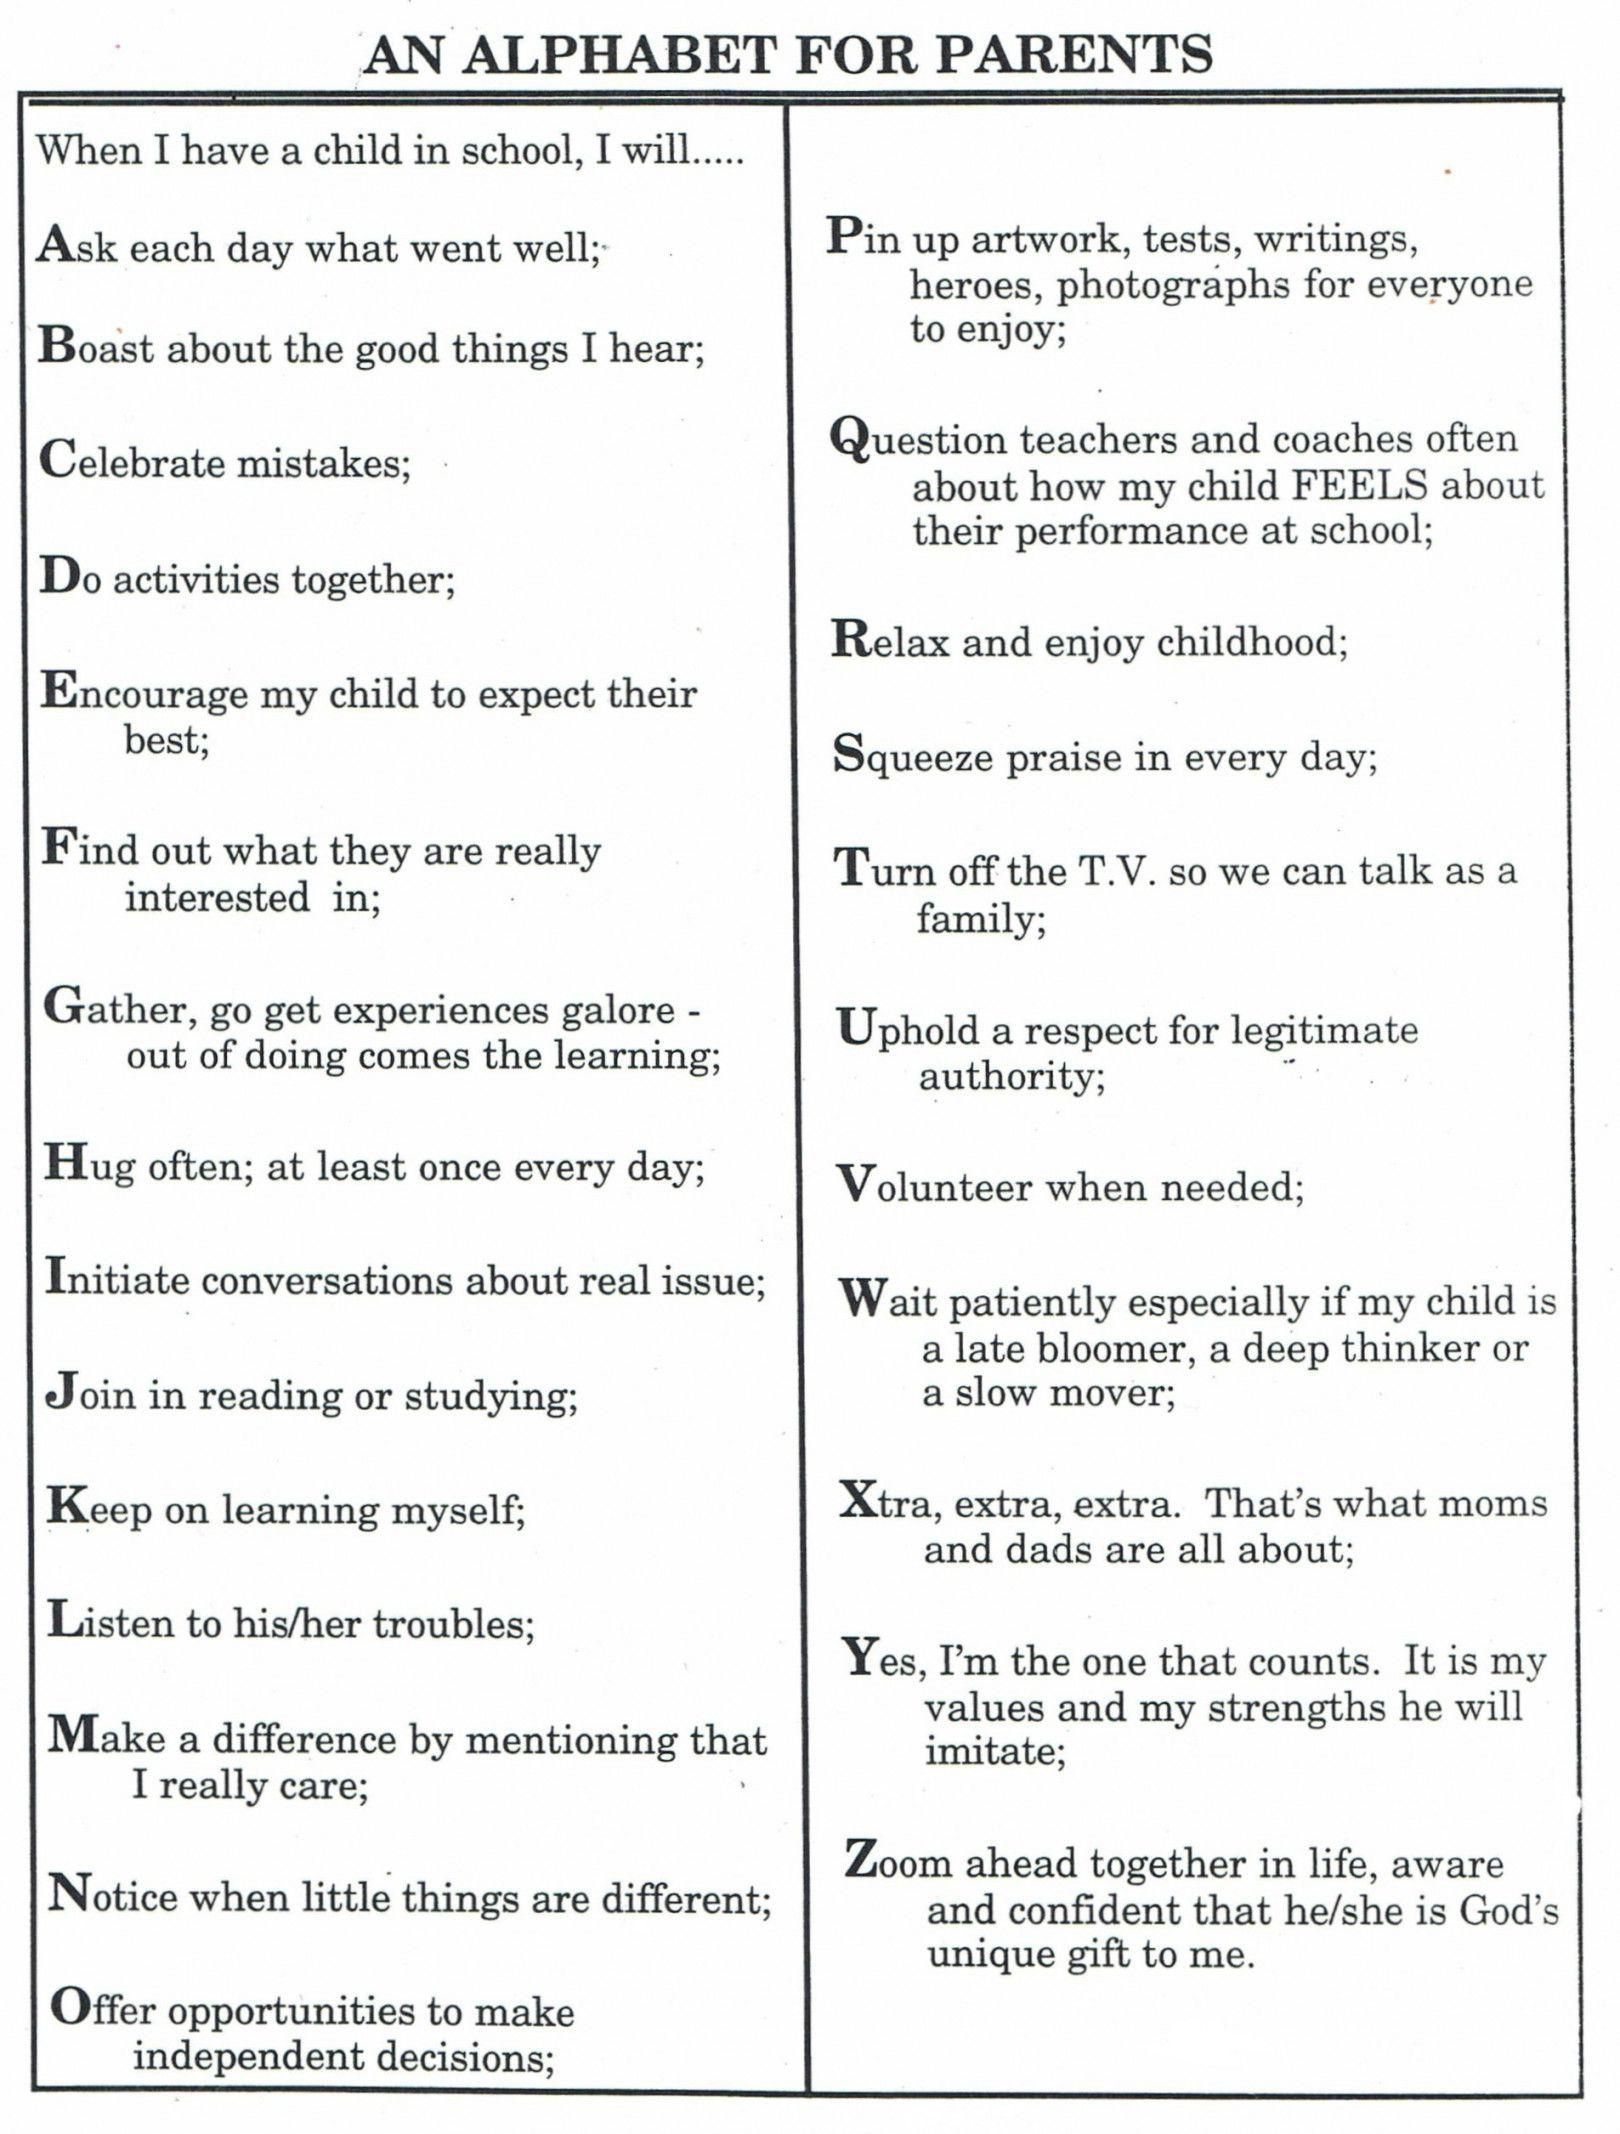 Free Printable Coping Skills Worksheets | Lostranquillos - Free | Free Printable Coping Skills Worksheets For Adults